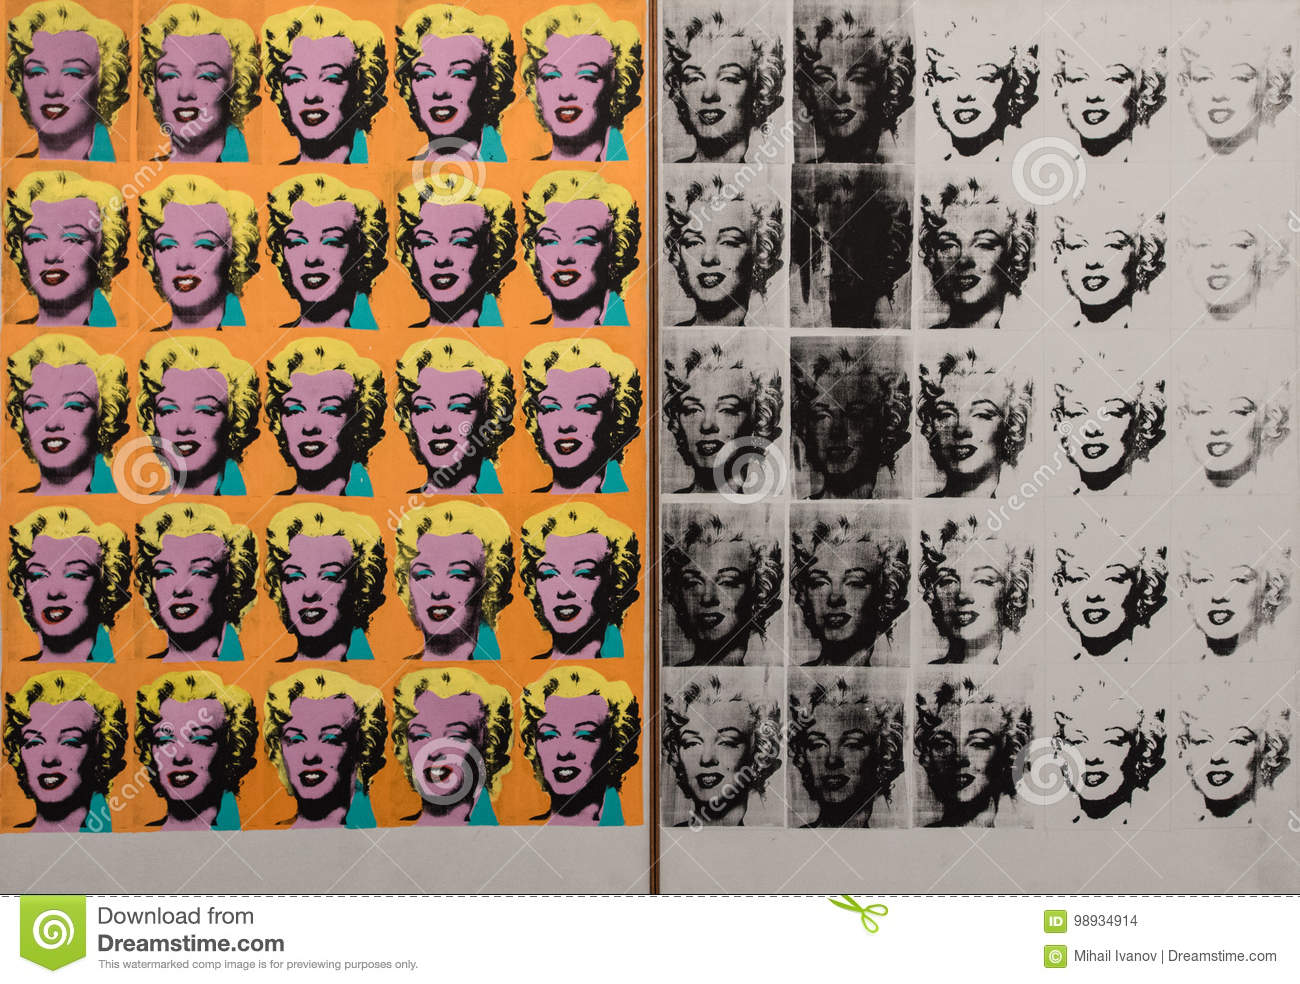 An Analysis of Andy Warhol's Gold Marilyn Monroe Essay